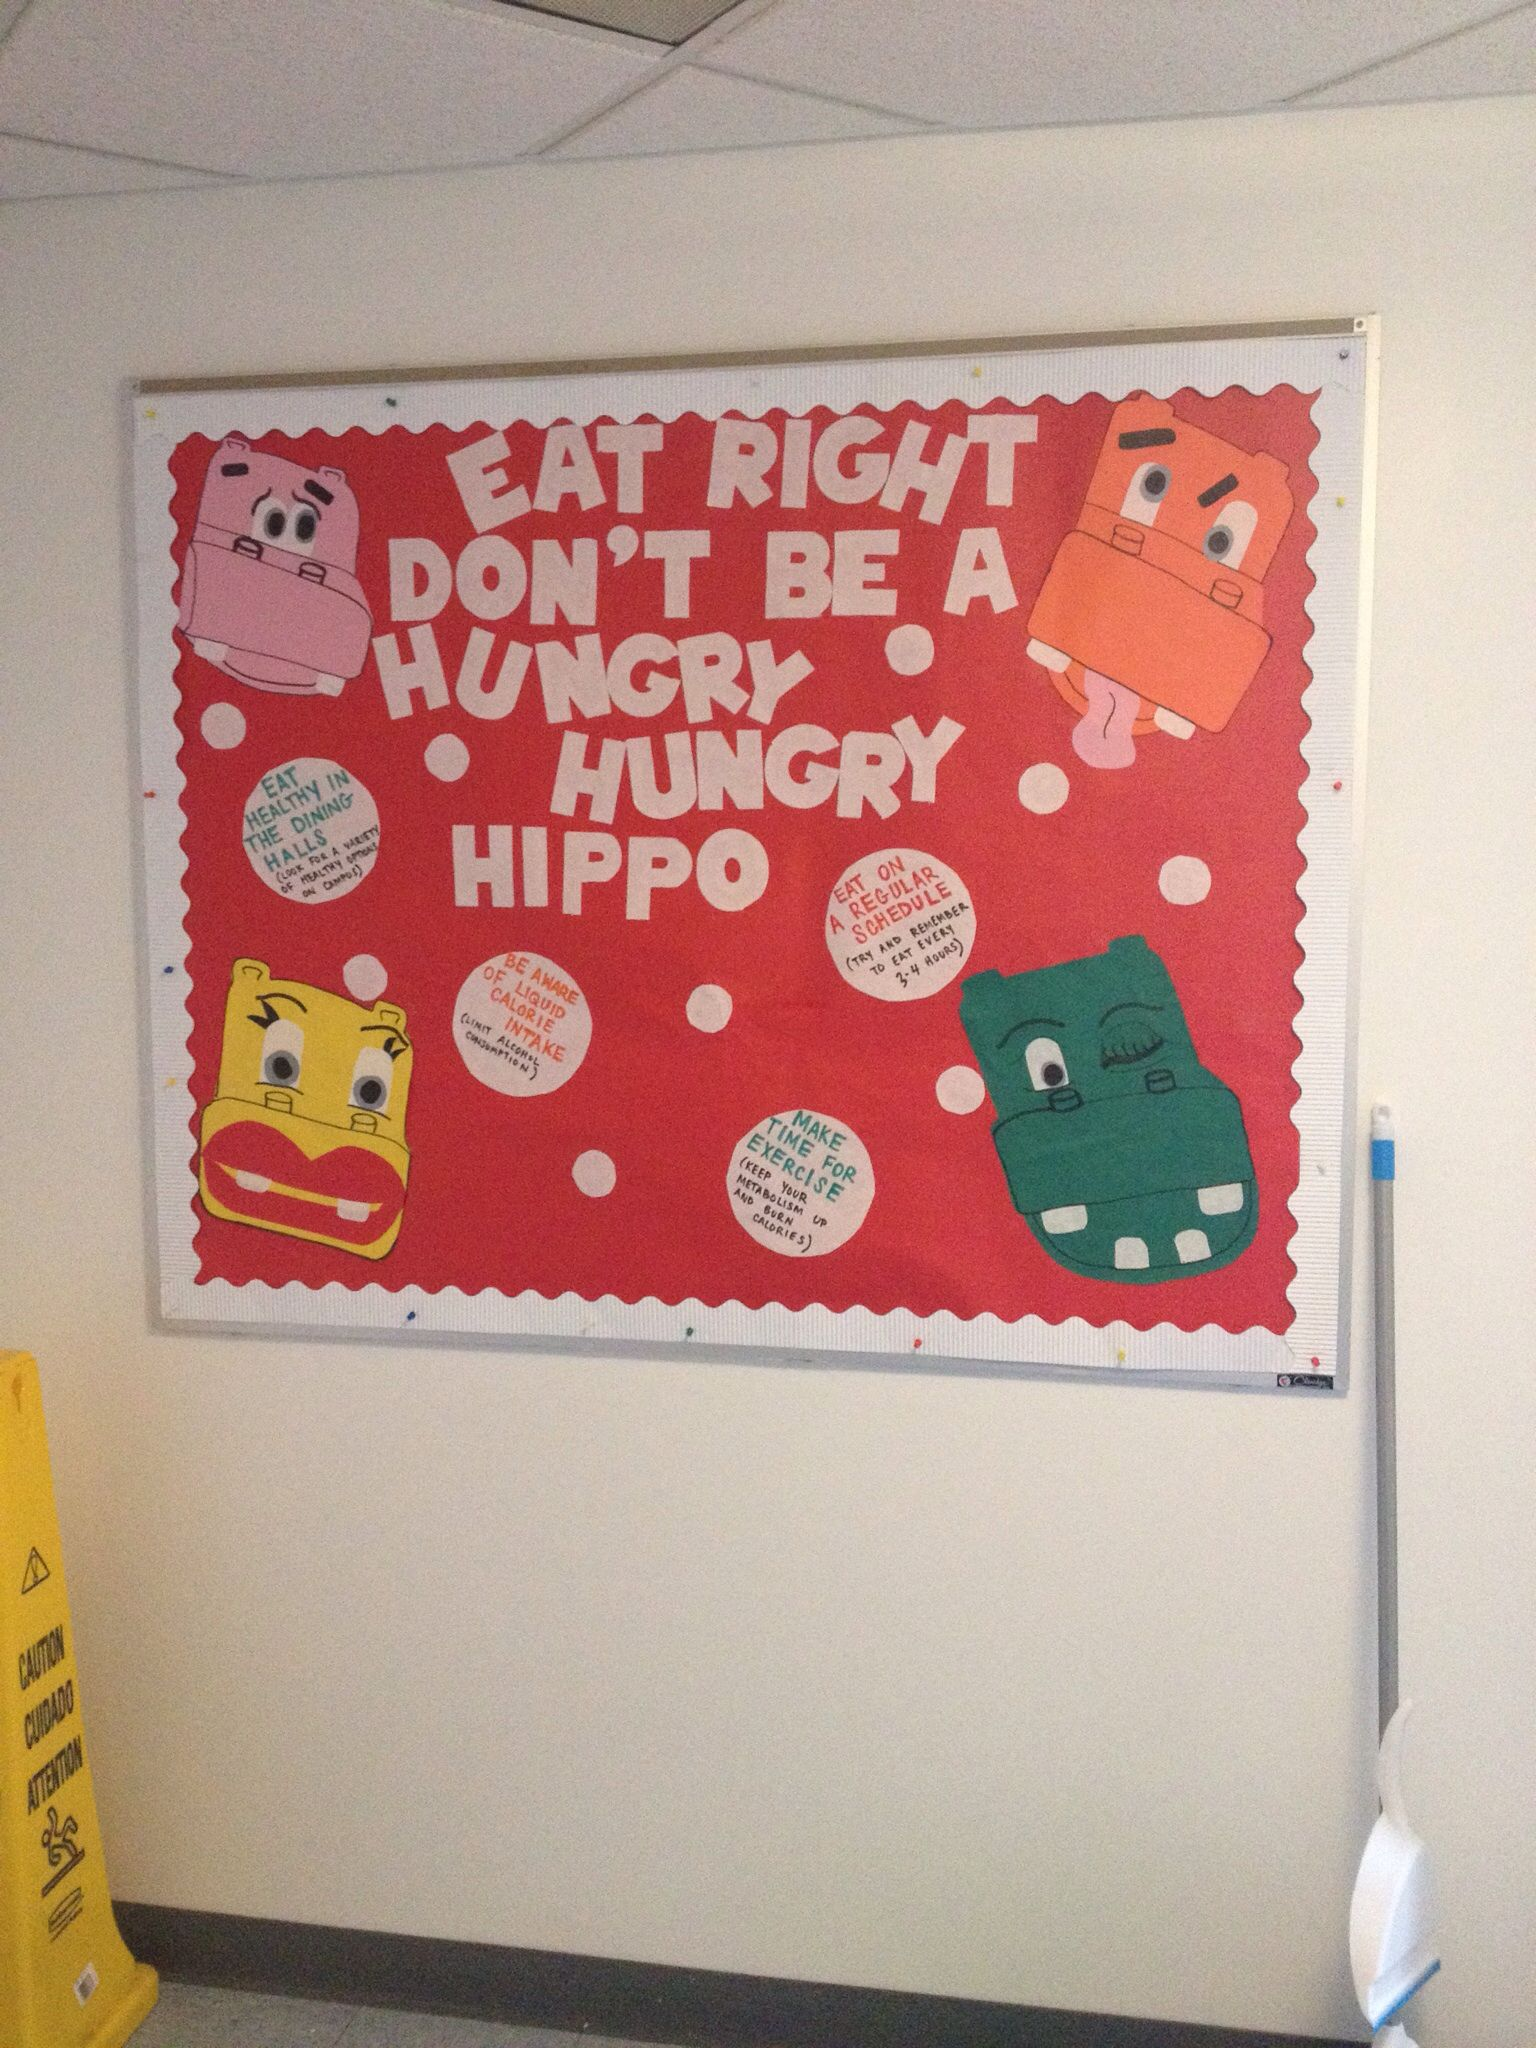 Dont be a hungry hippo eat right bored hungry